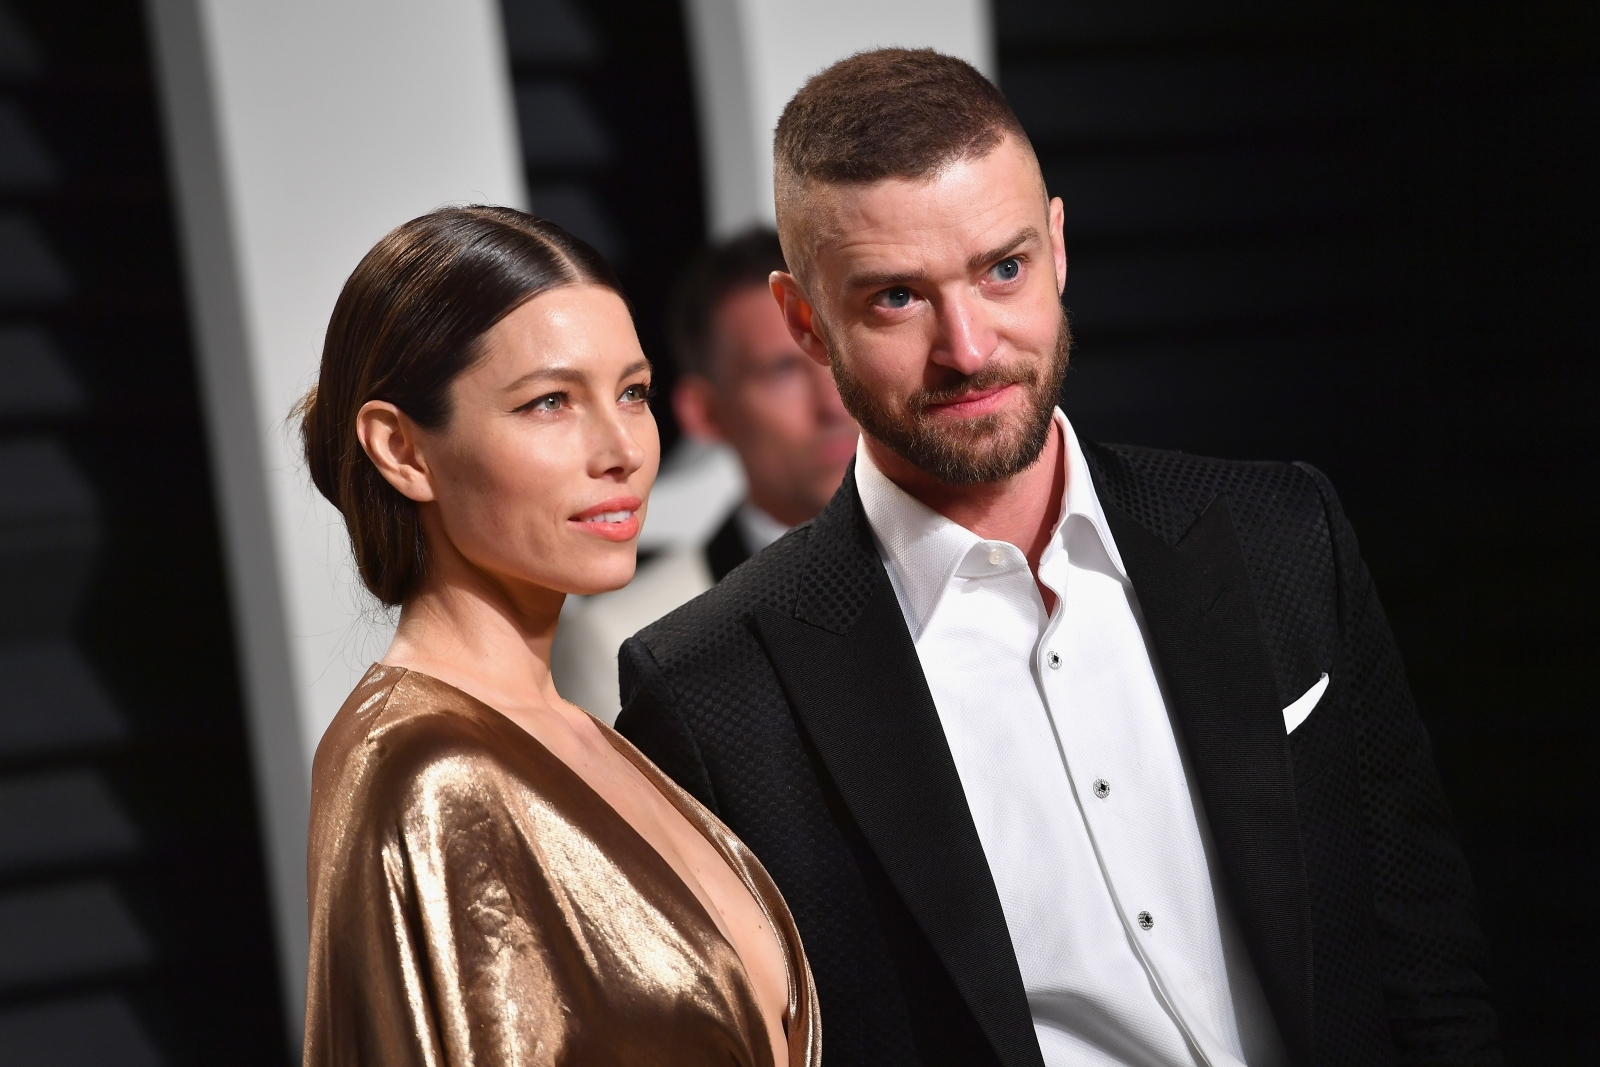 Jessica Biel Gives Us a Close-Up Look at Her Engagement Ring